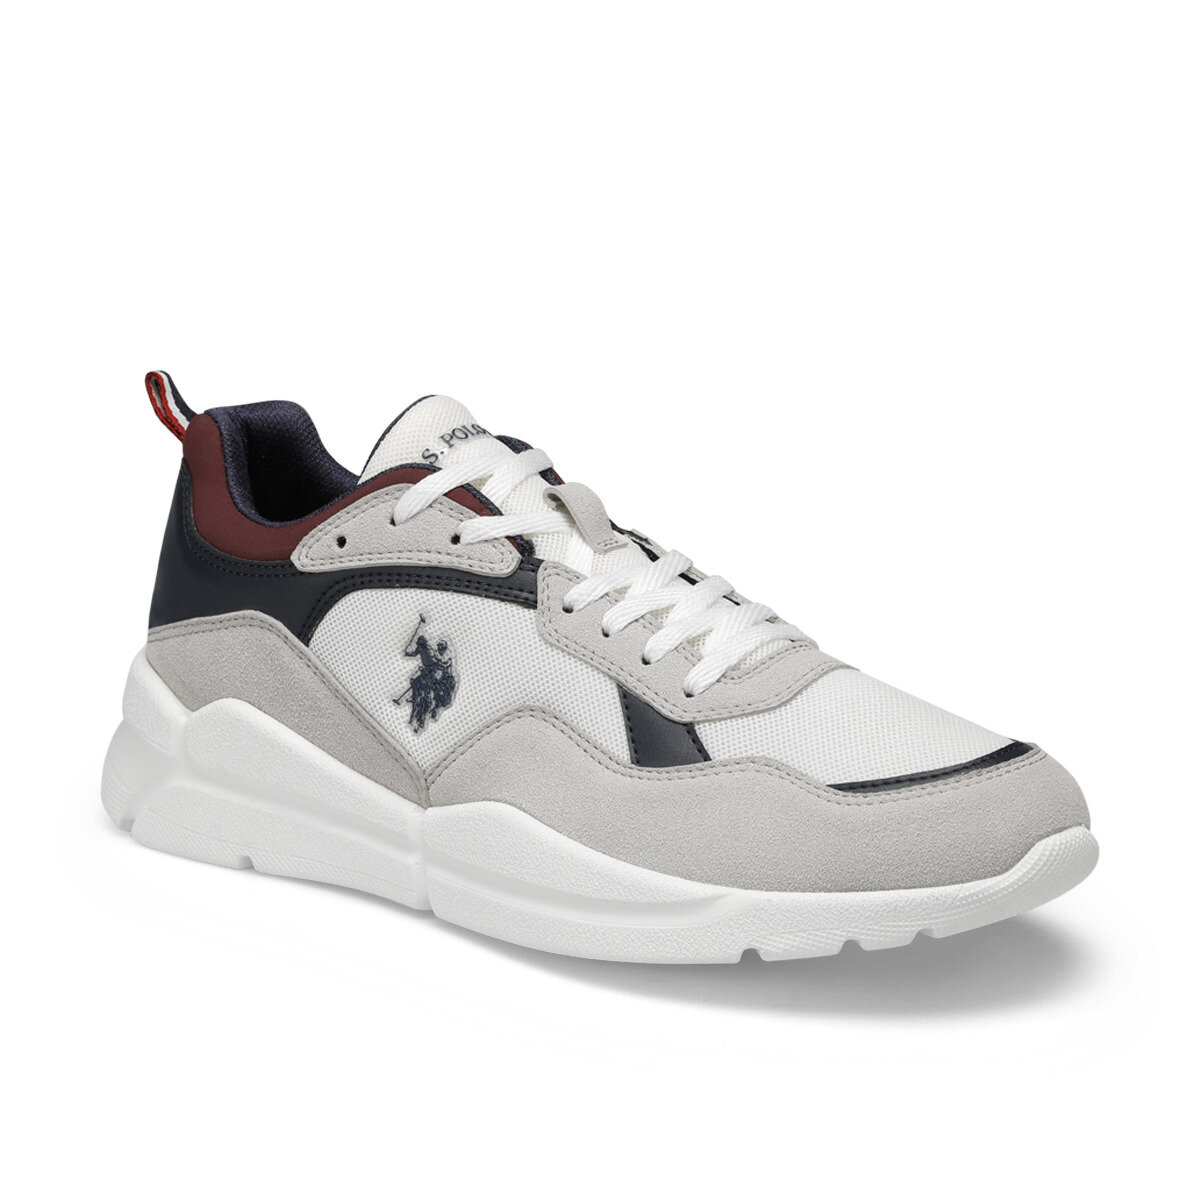 FLO CALLUM SUMMER White Men 'S Sneaker Shoes U.S. POLO ASSN.